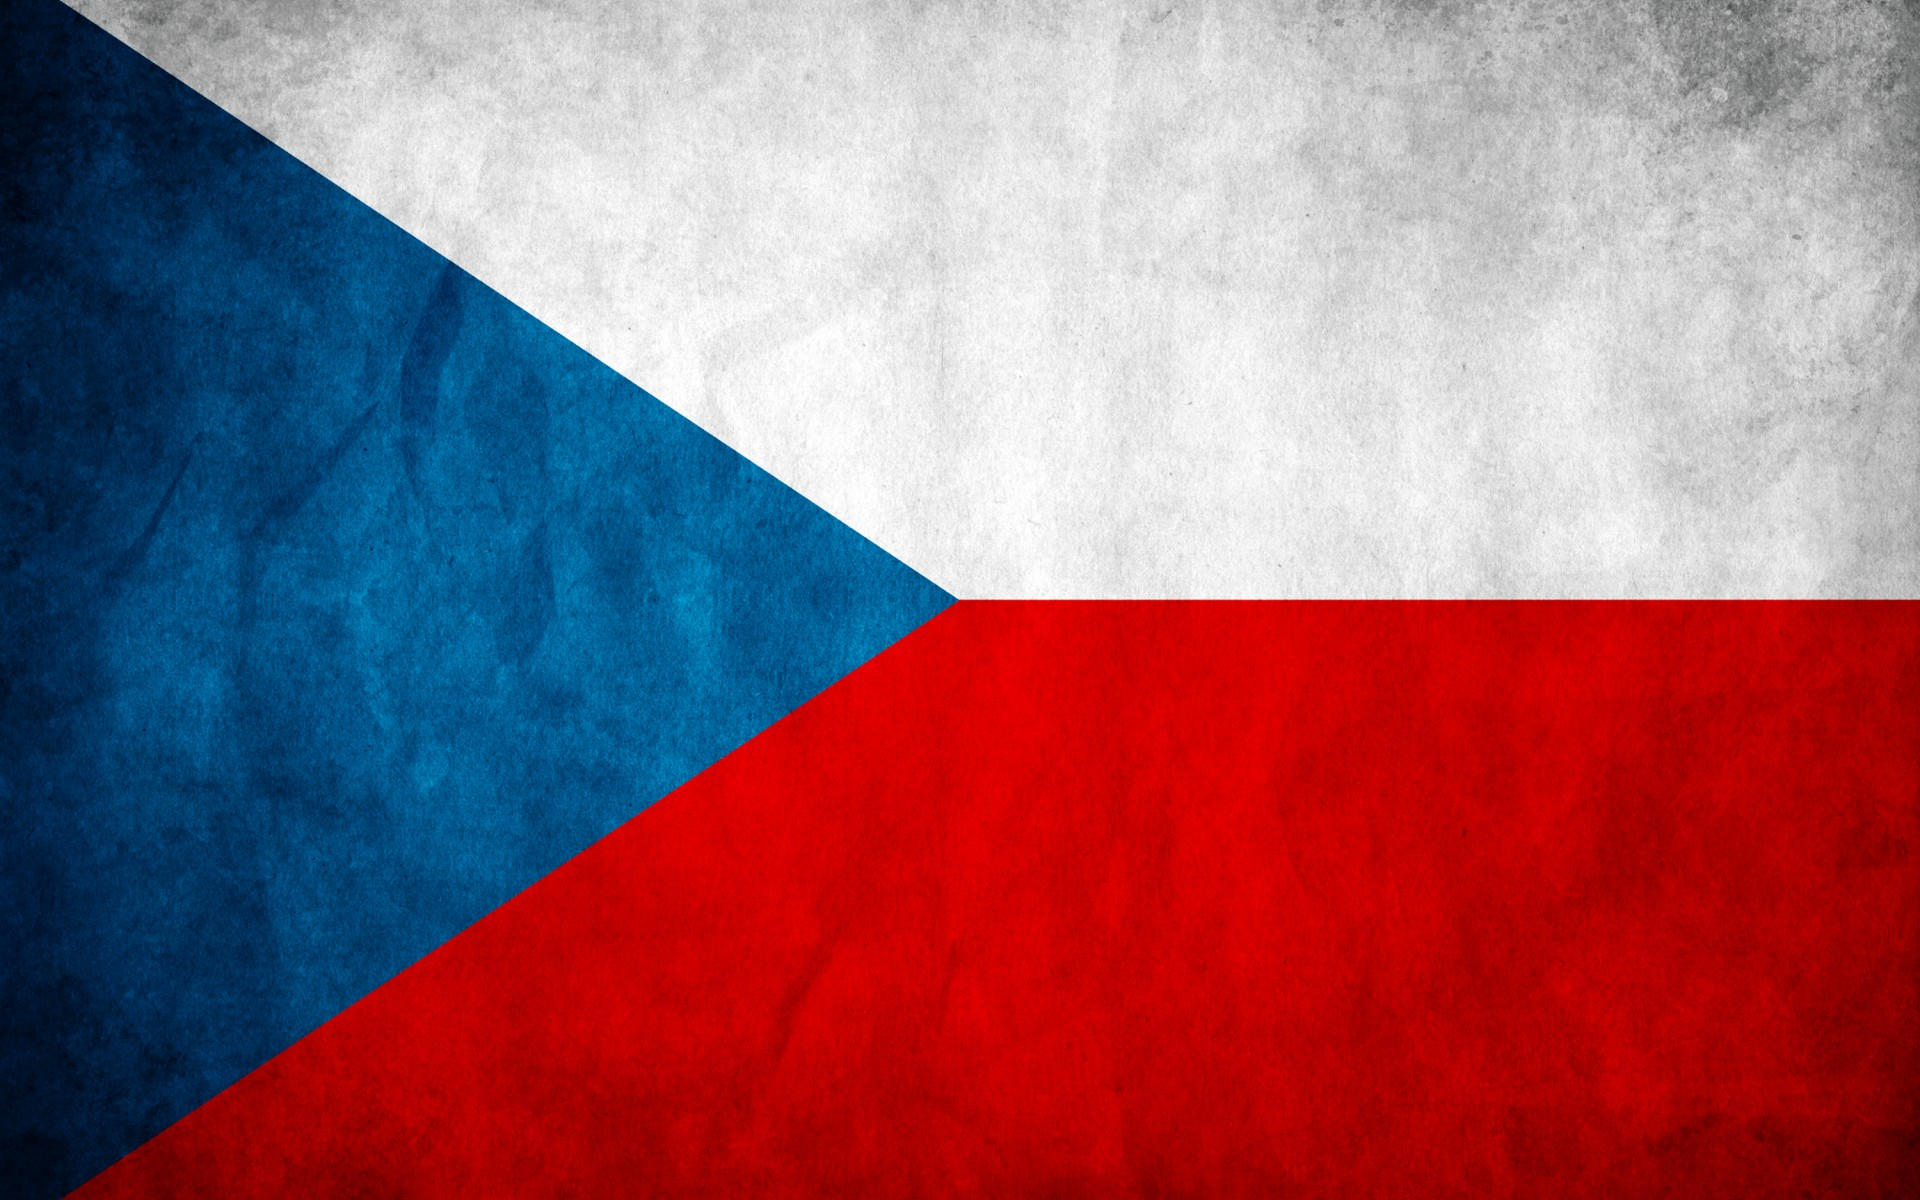 Czech Republic Awesome Wallpapers 1920x1200